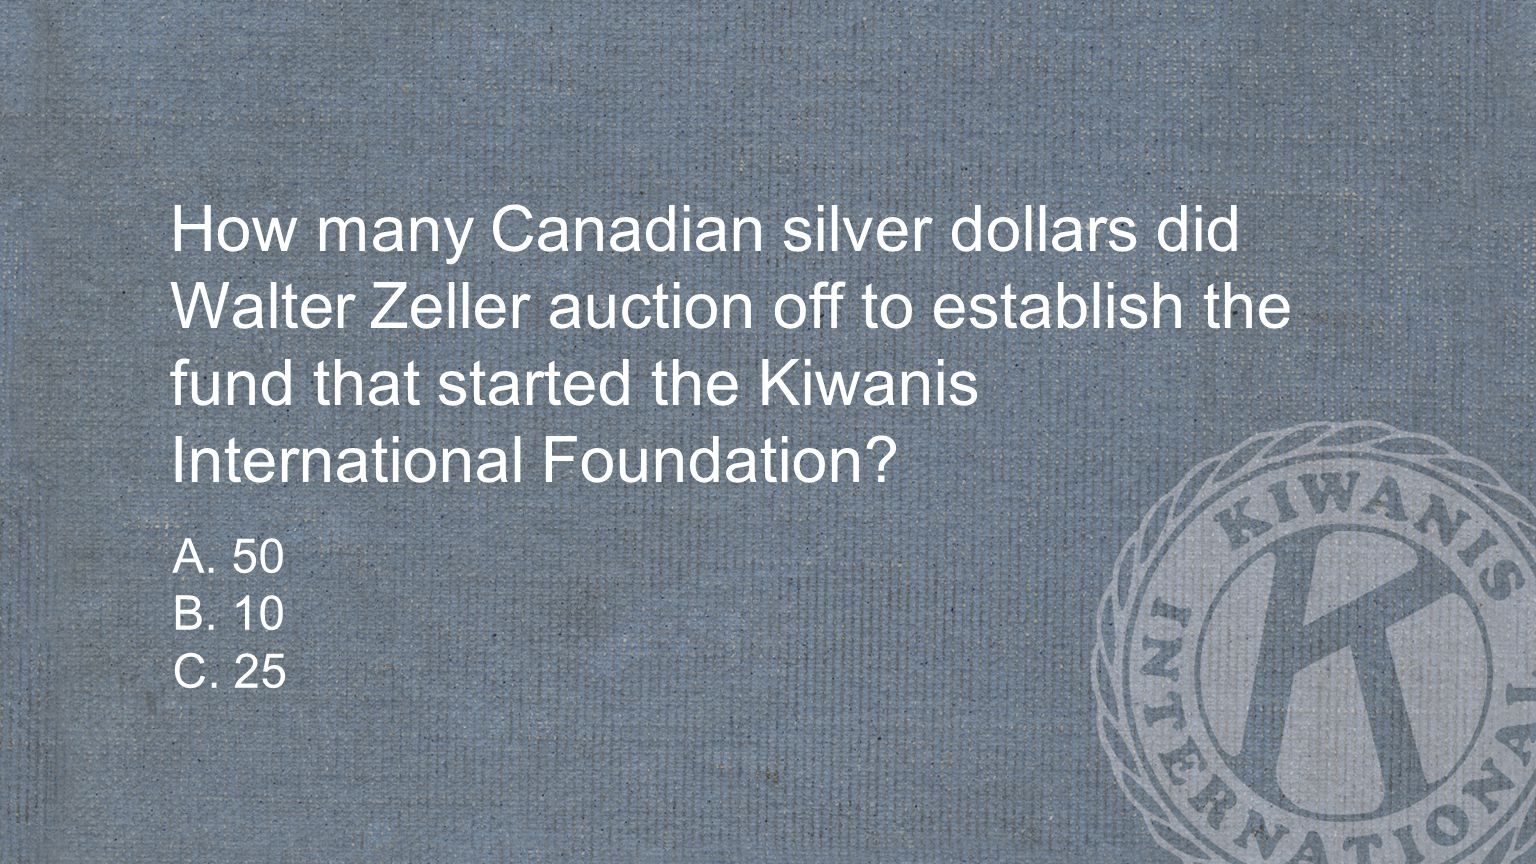 How many Canadian silver dollars did Walter Zeller auction off to establish the fund that started the Kiwanis International Foundation